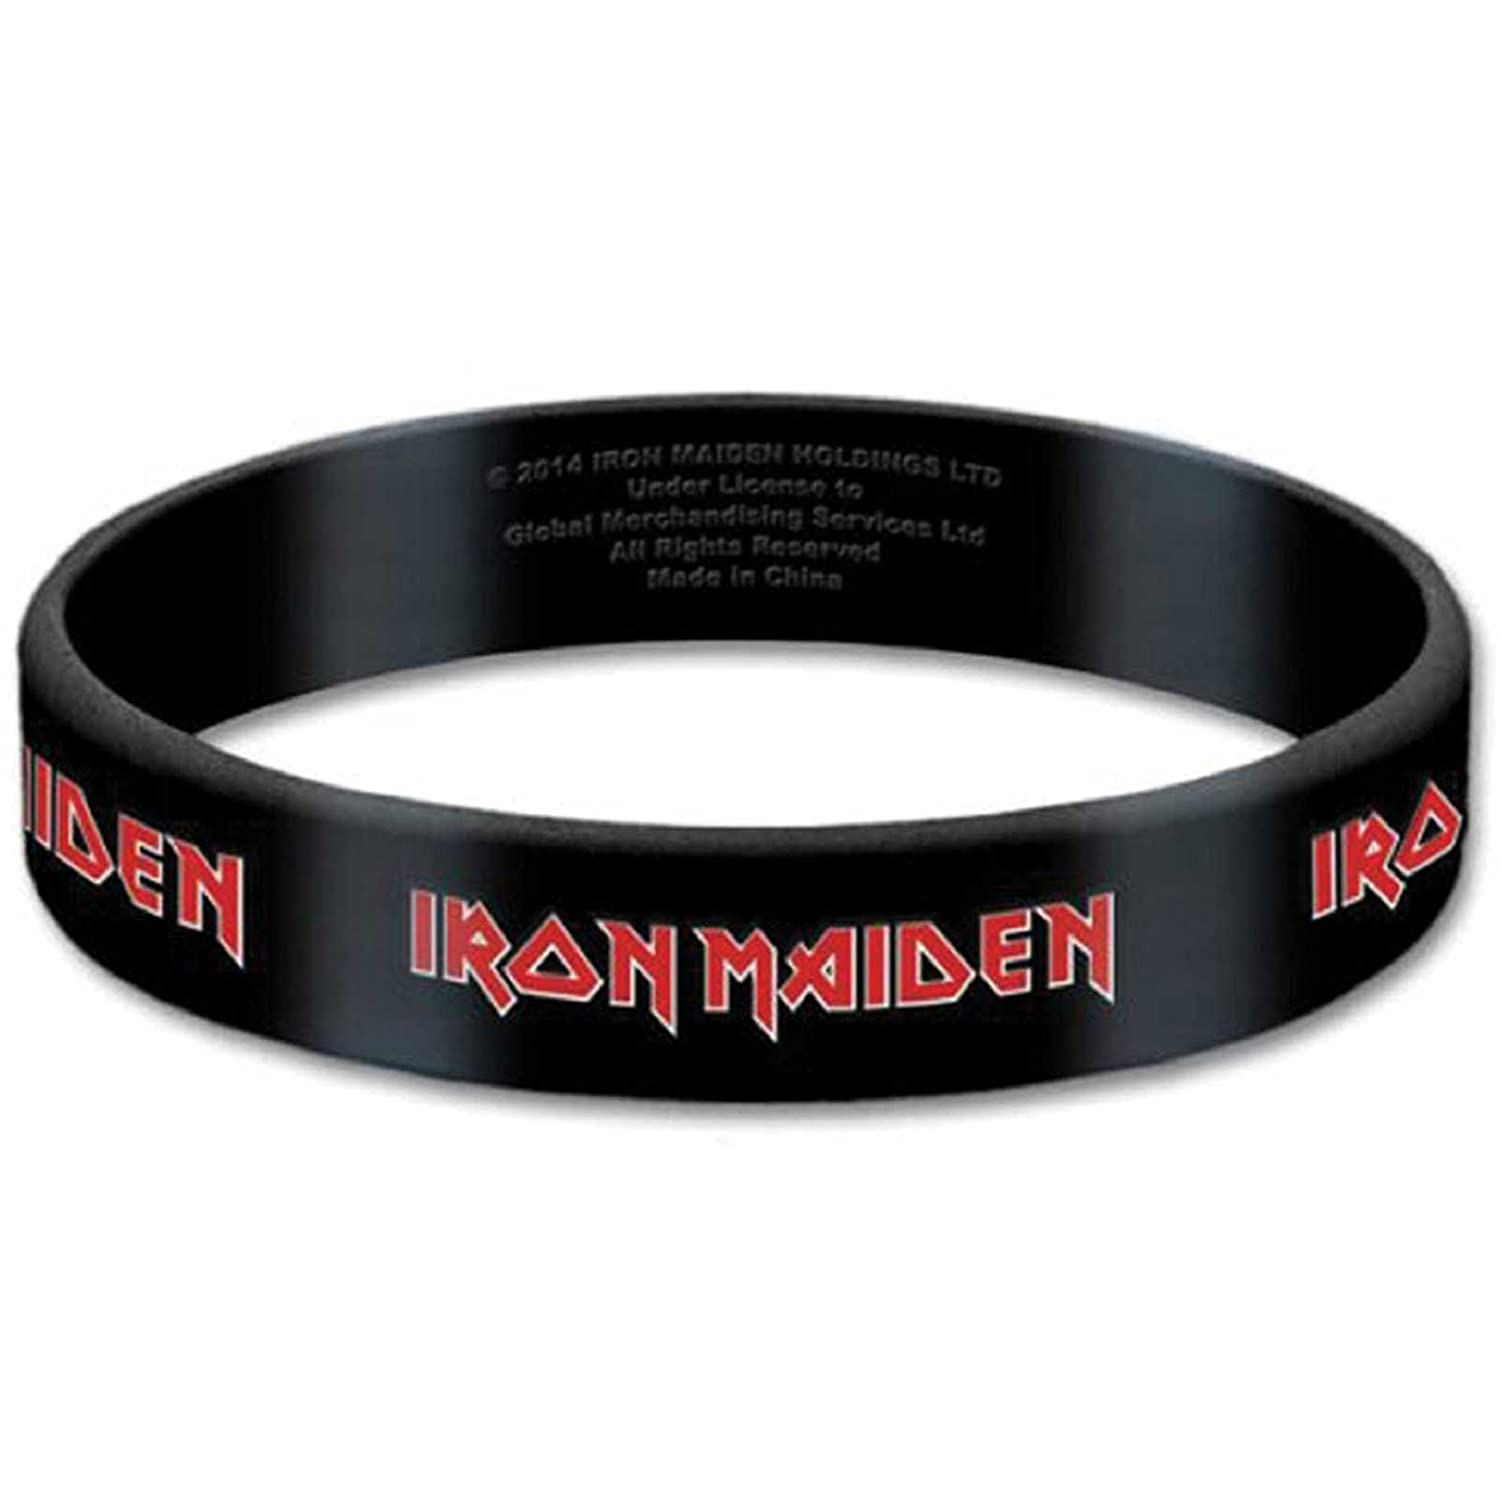 Iron Maiden Wristband Classic band Logo Official New Black 10 mm rubber